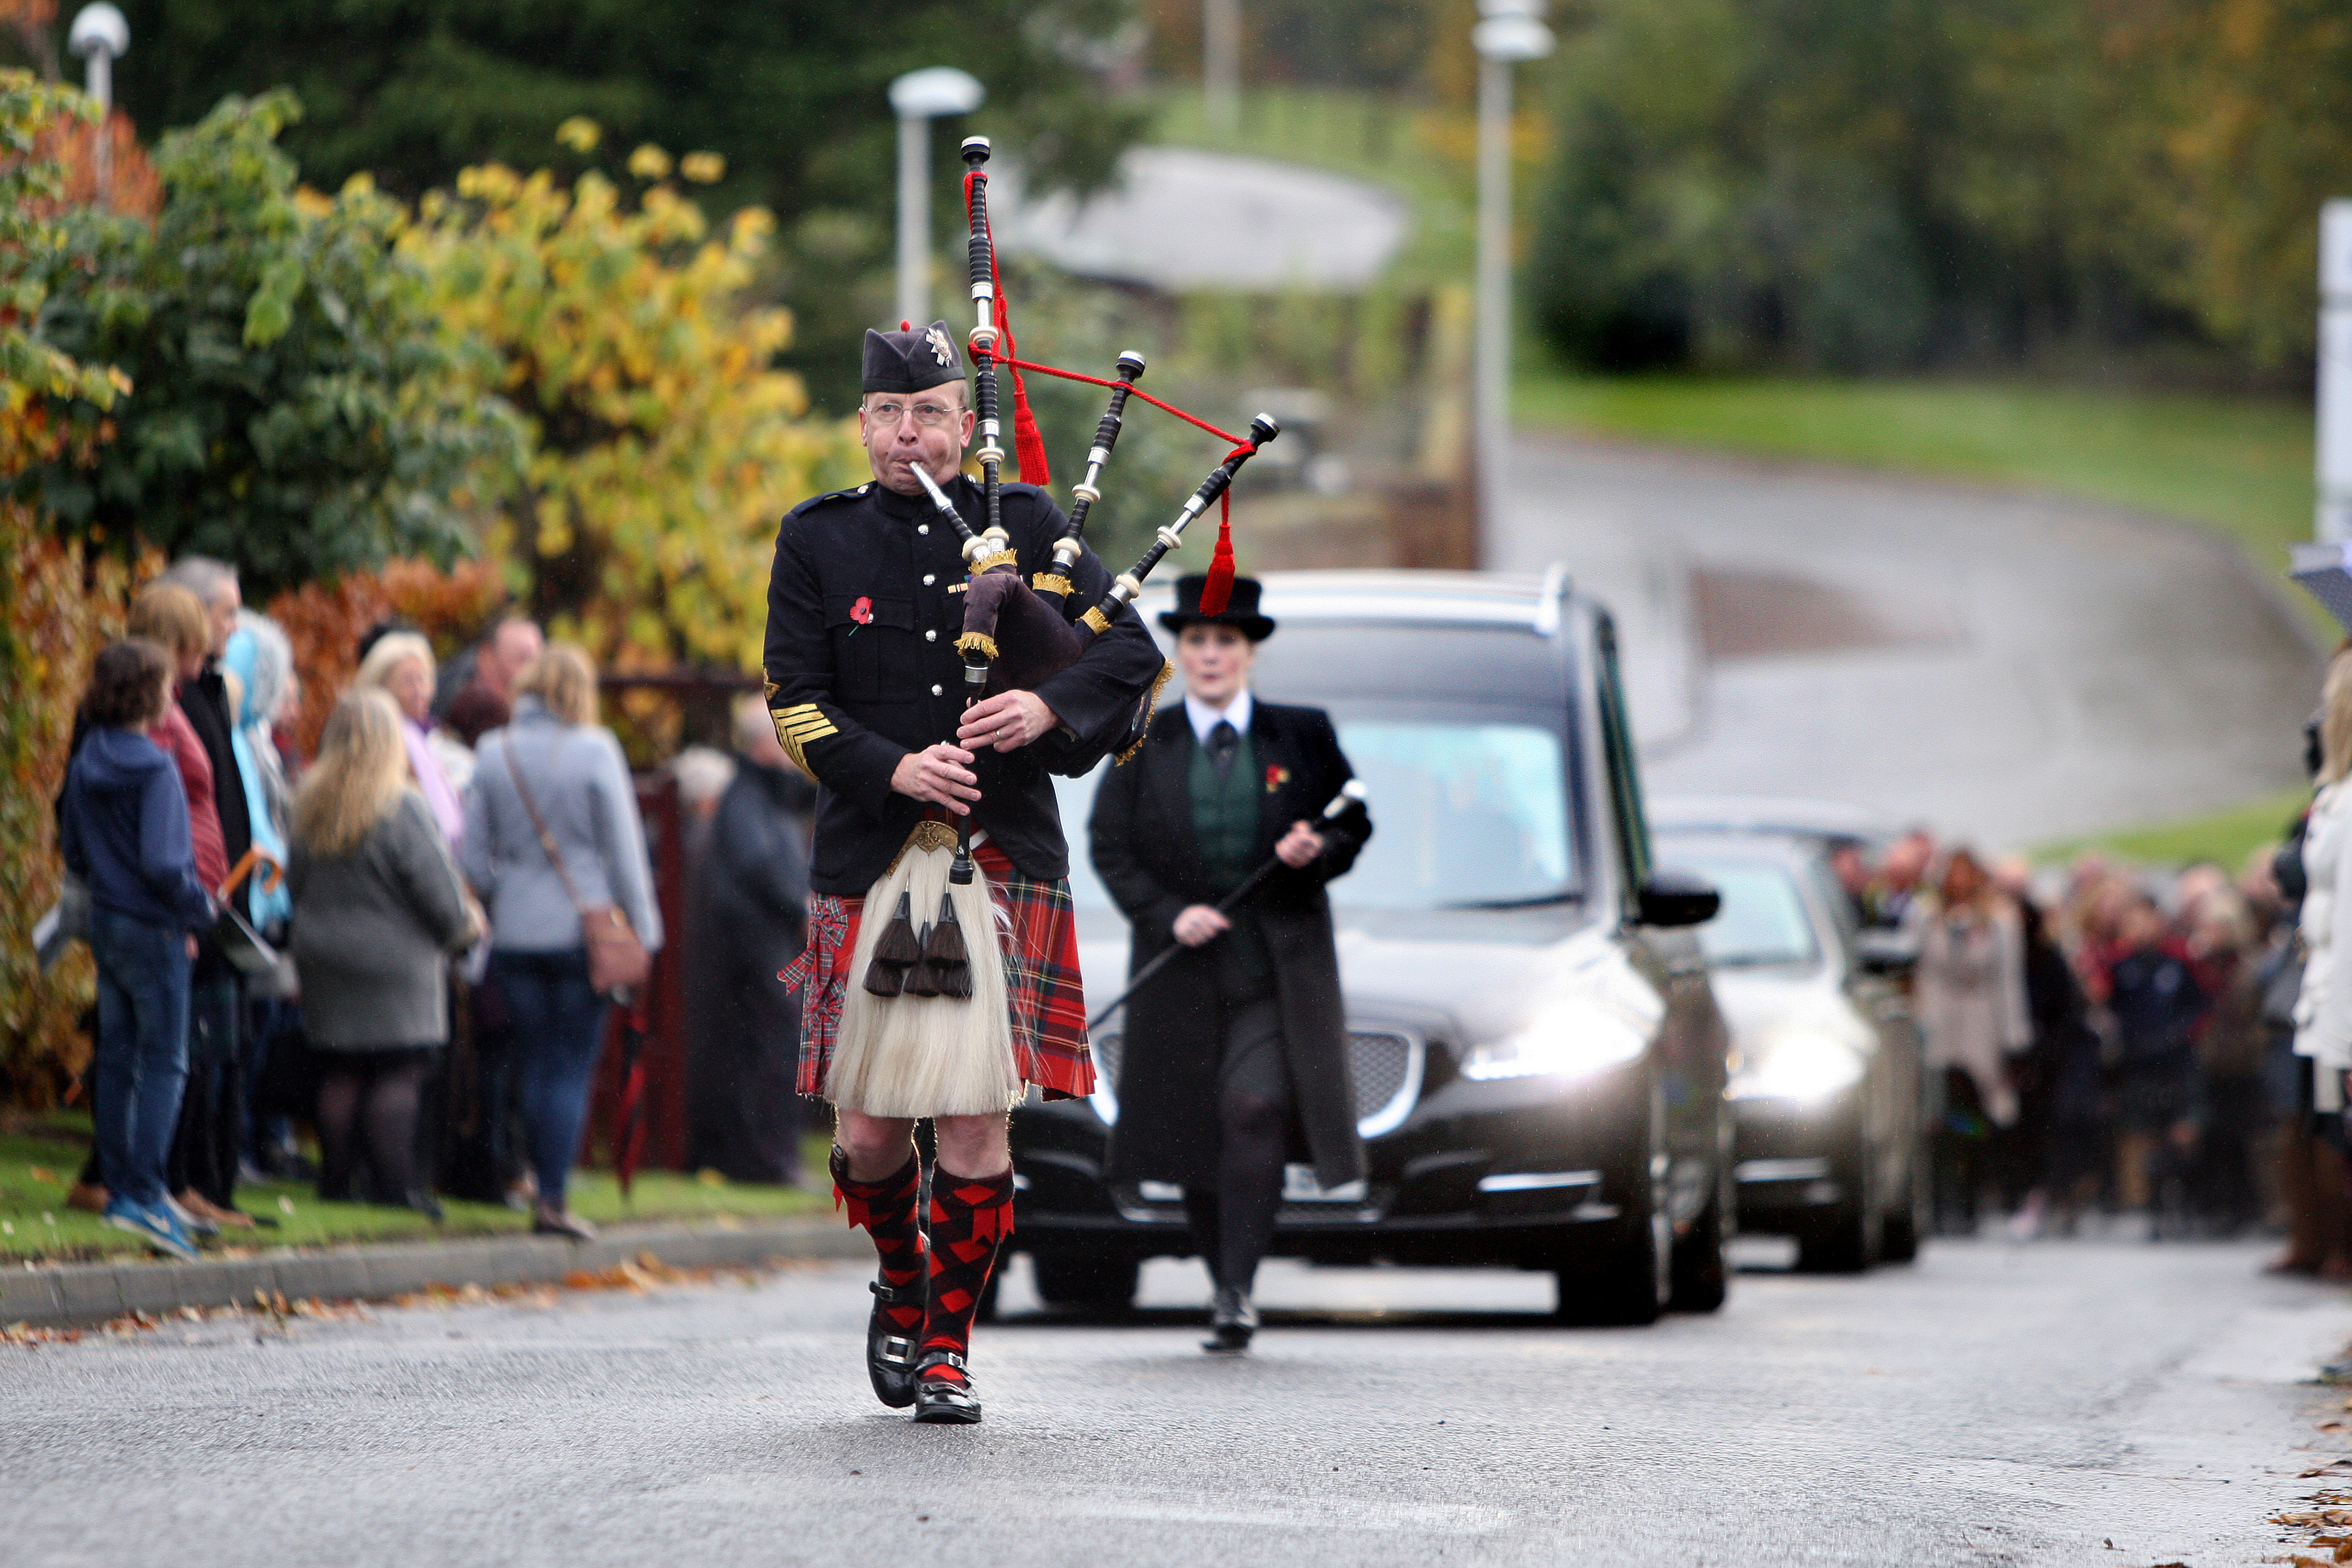 A piper leads the hearse carrying Ewen Chisholm and followed by hundreds of mourners on way to Kirriemuir cemetery,